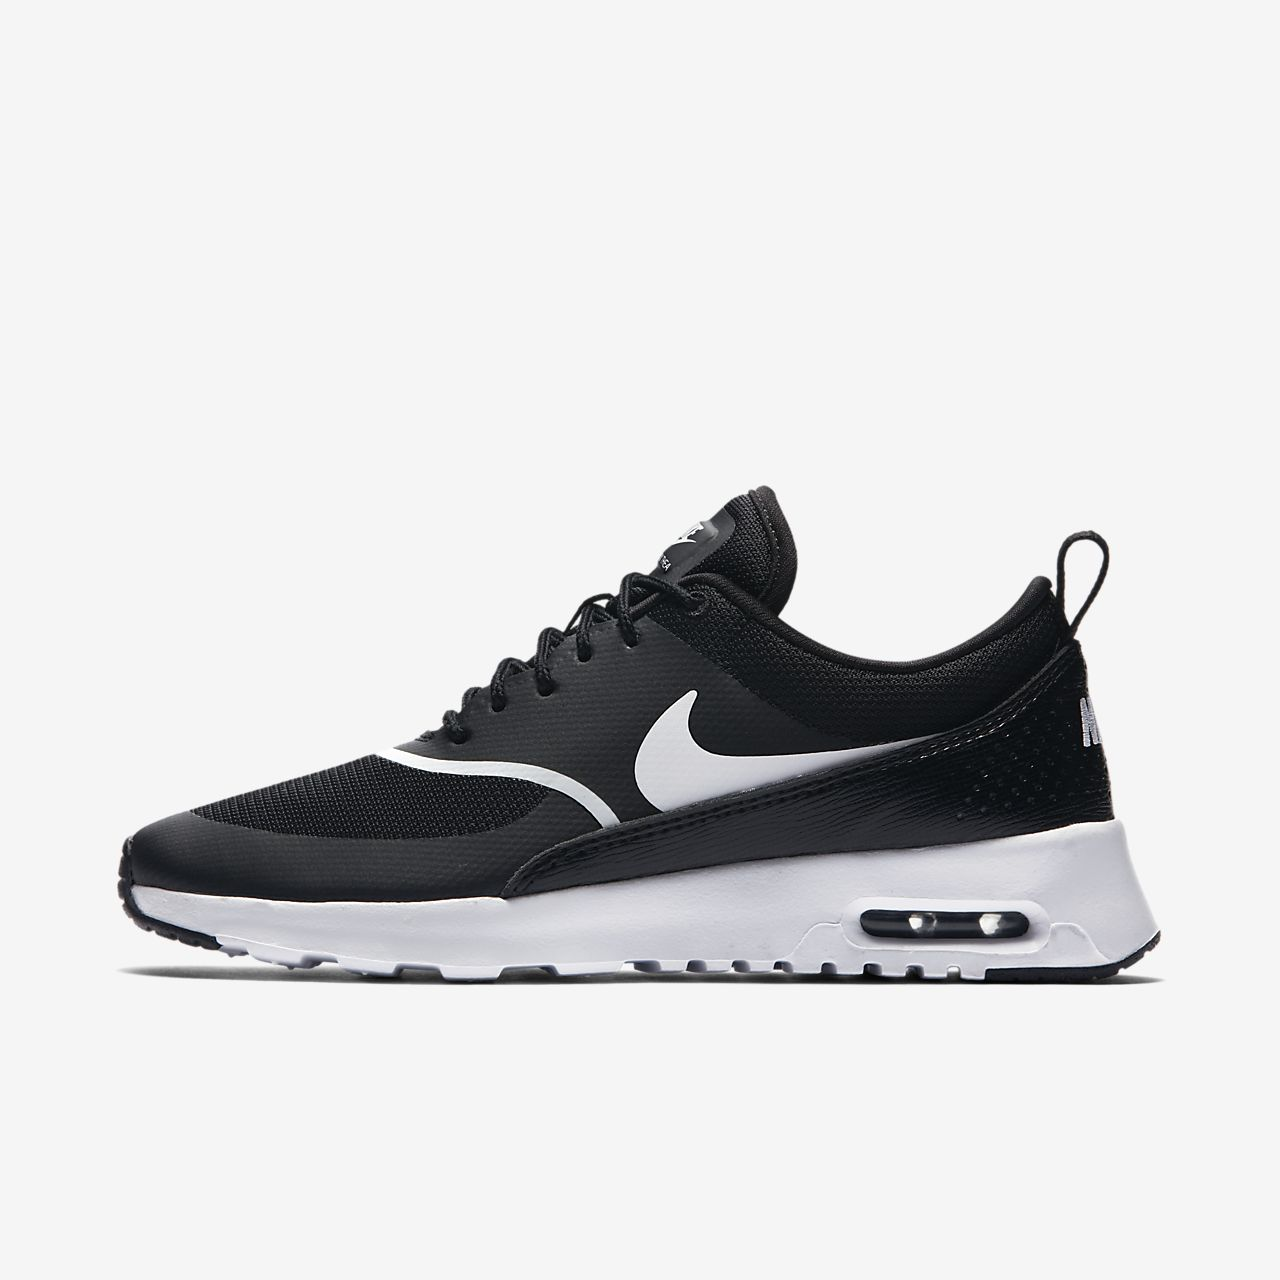 reputable site c11a0 12b98 ... Nike Air Max Thea Women s Shoe